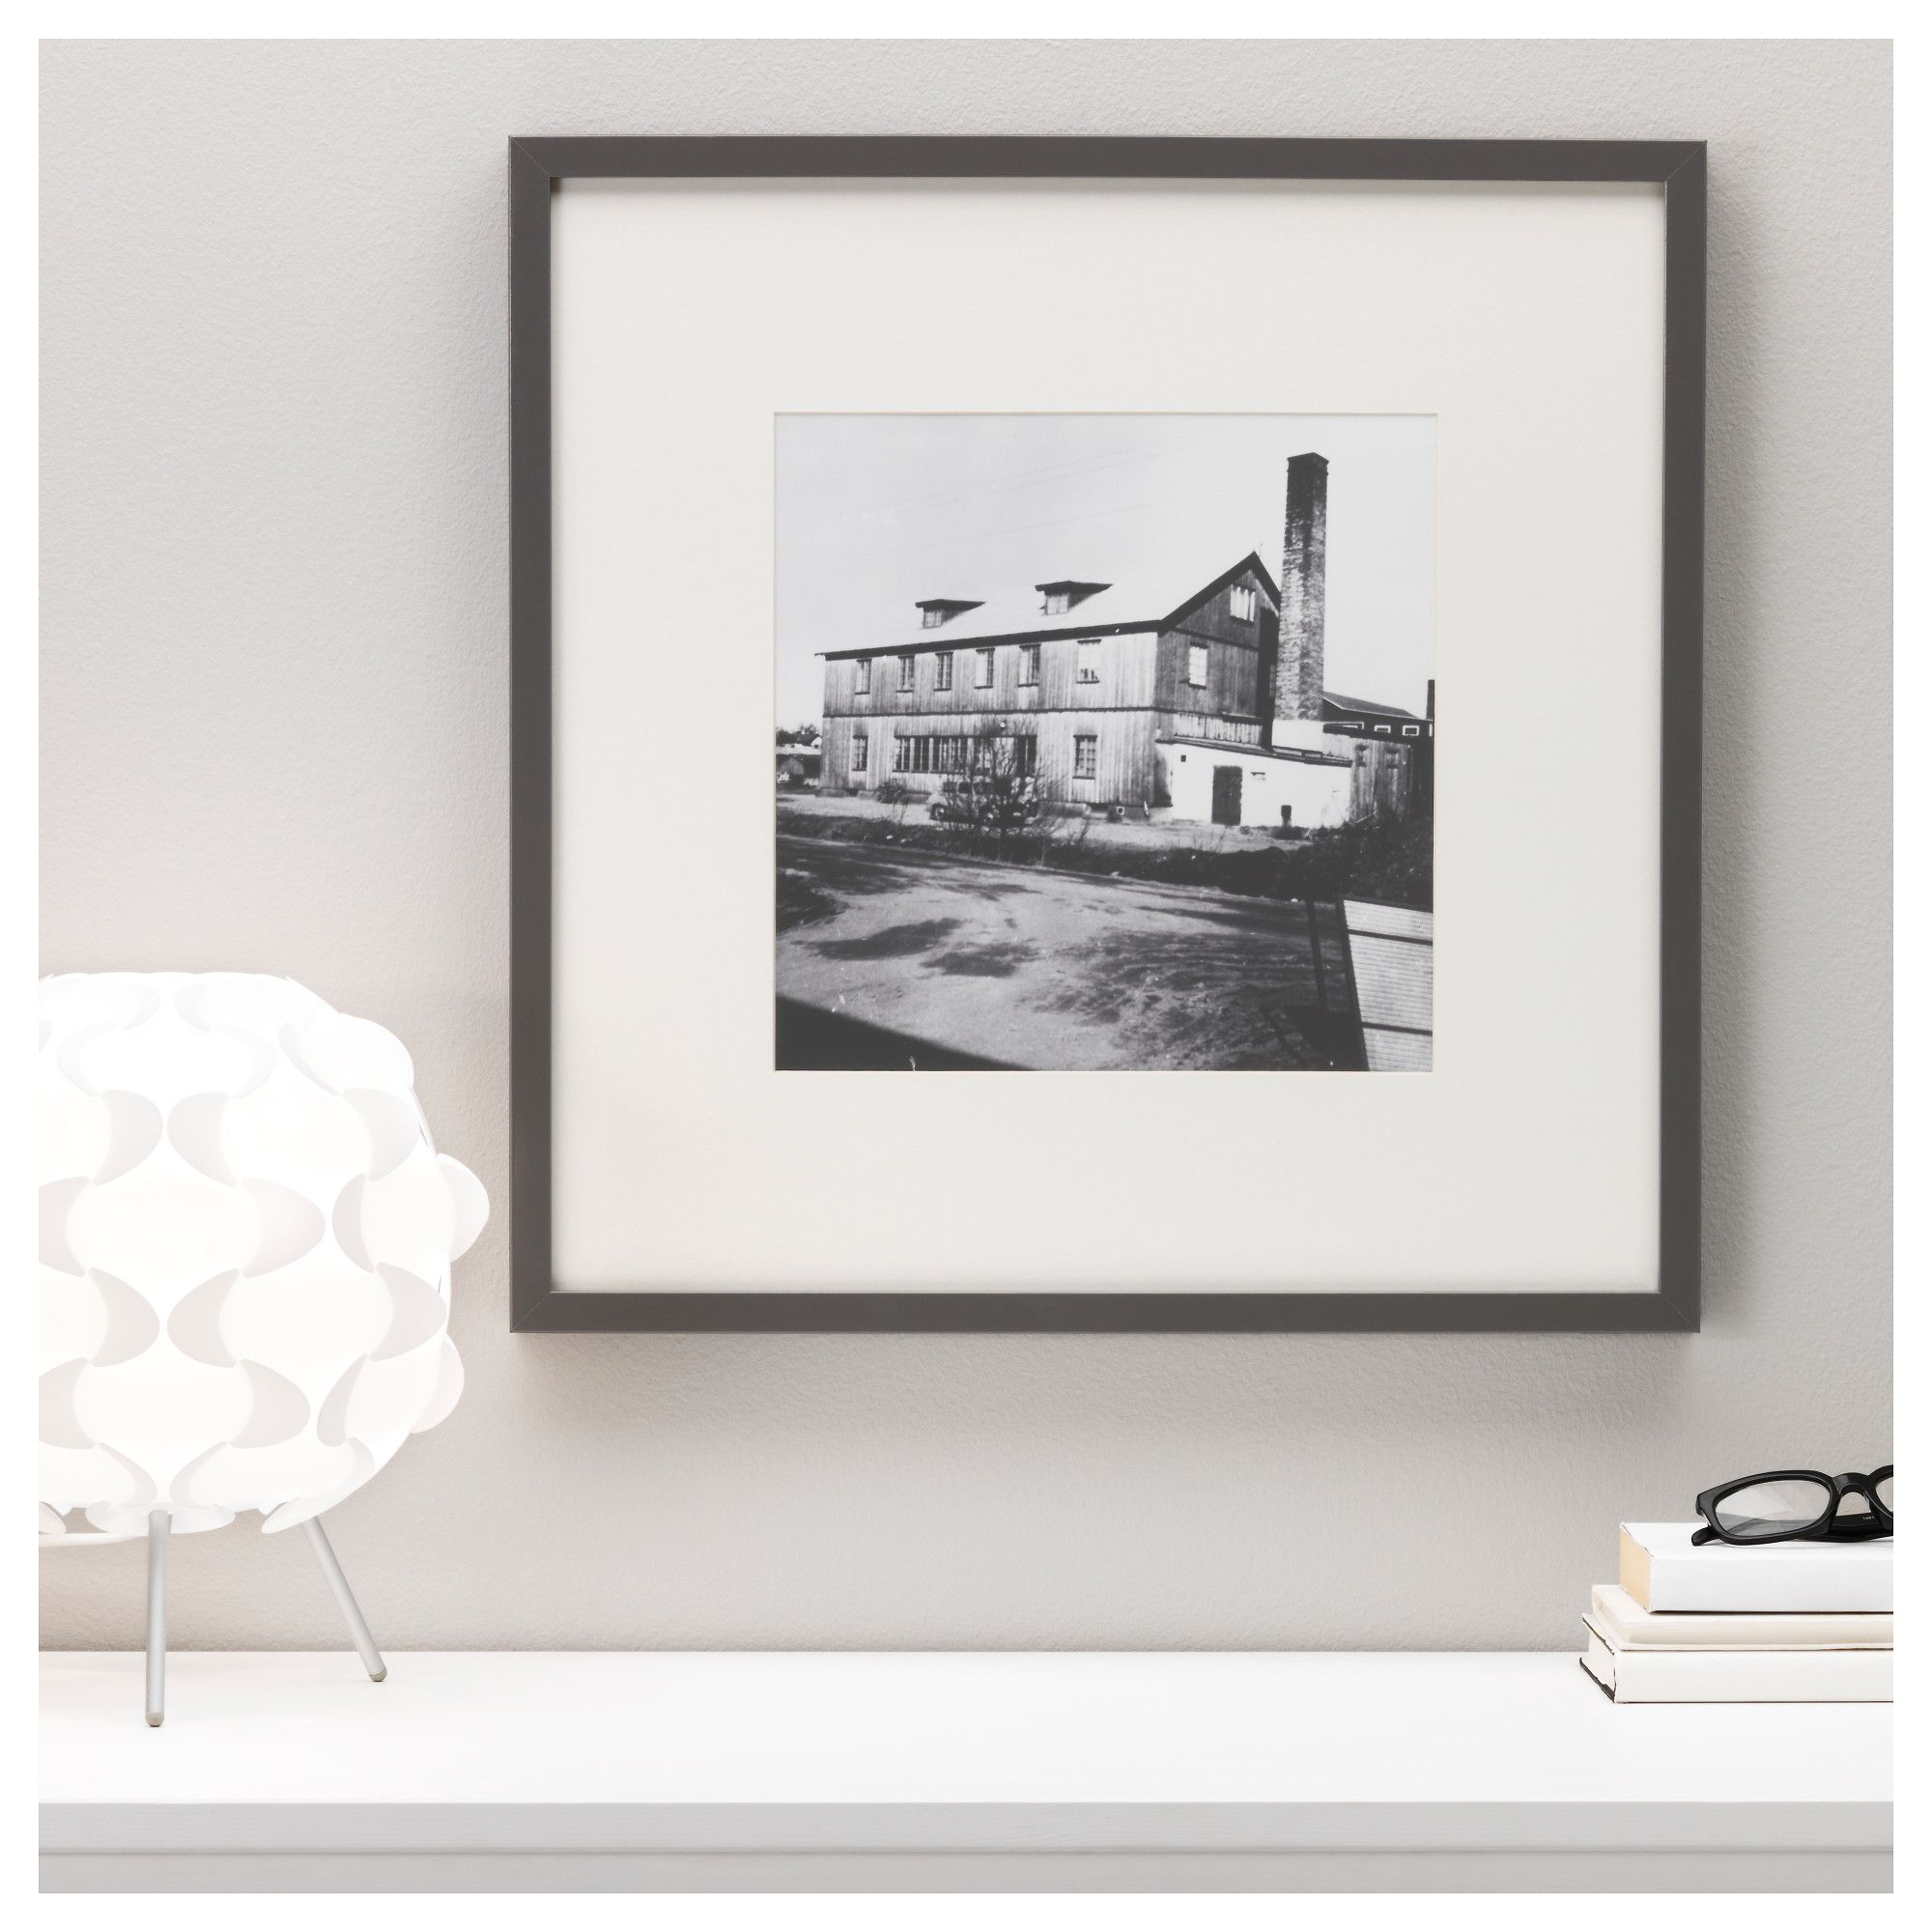 White Floating Picture Frames